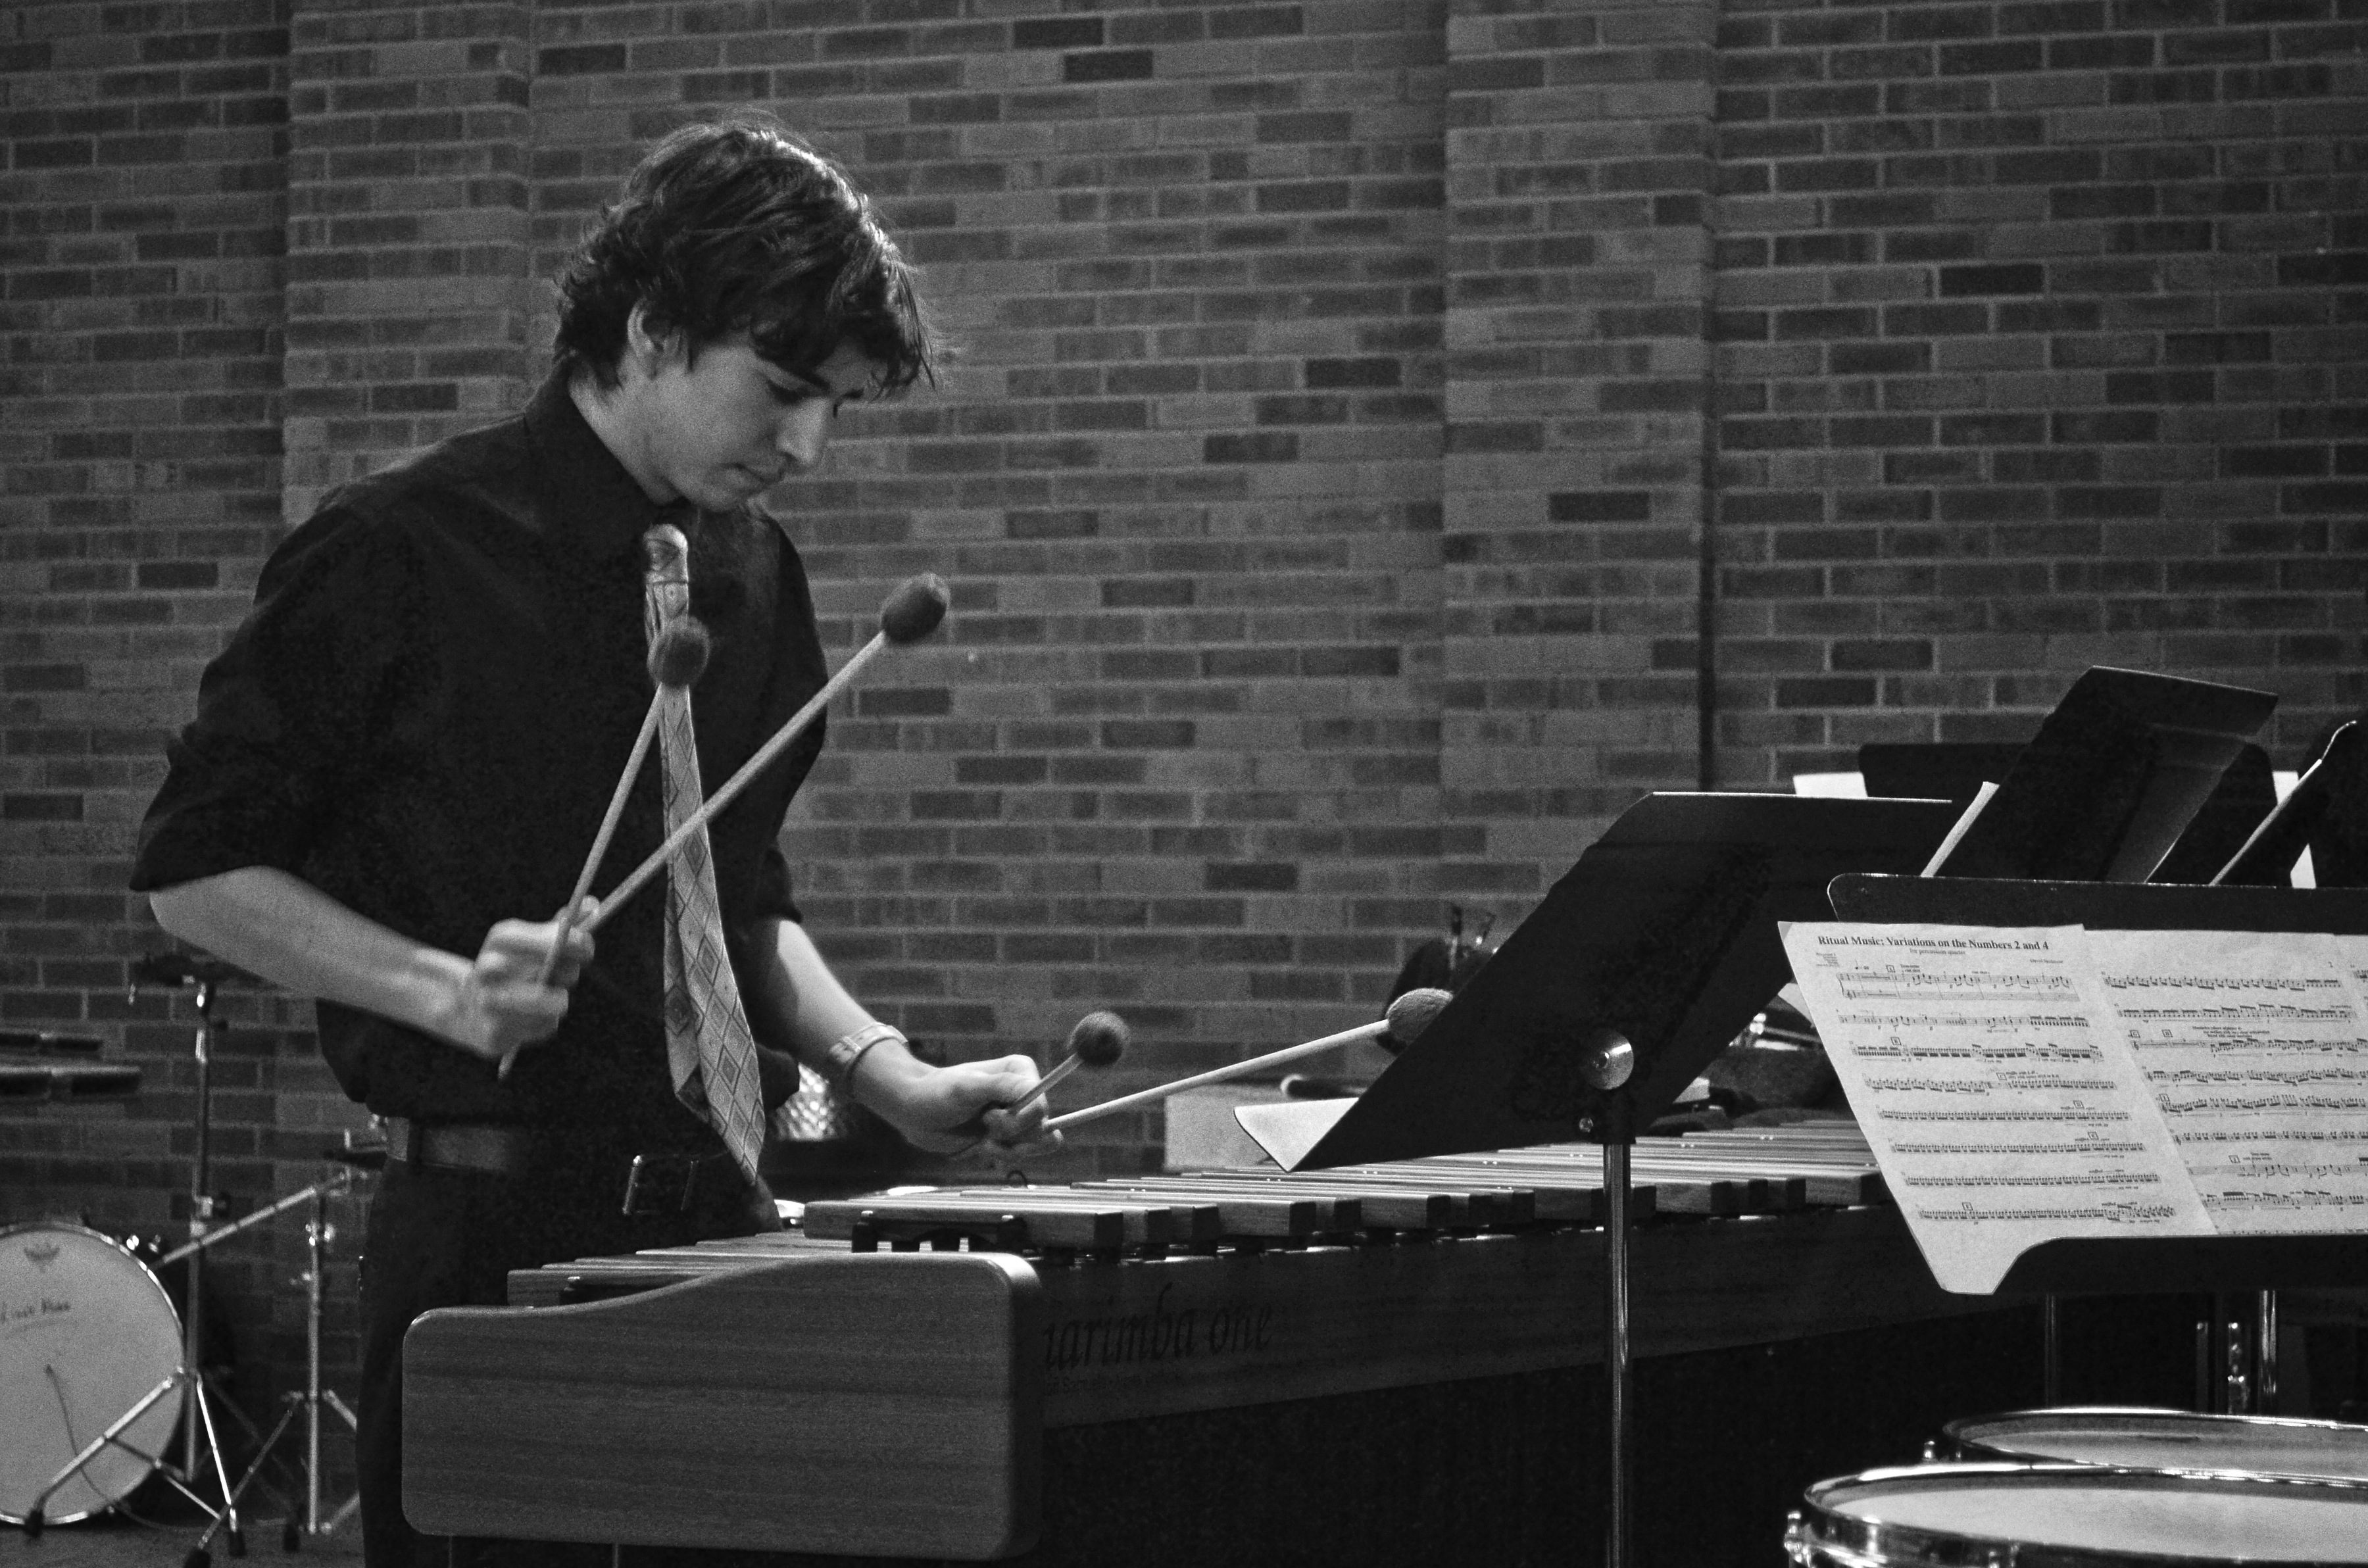 New Music by Zack Baltich Combines Several Elements